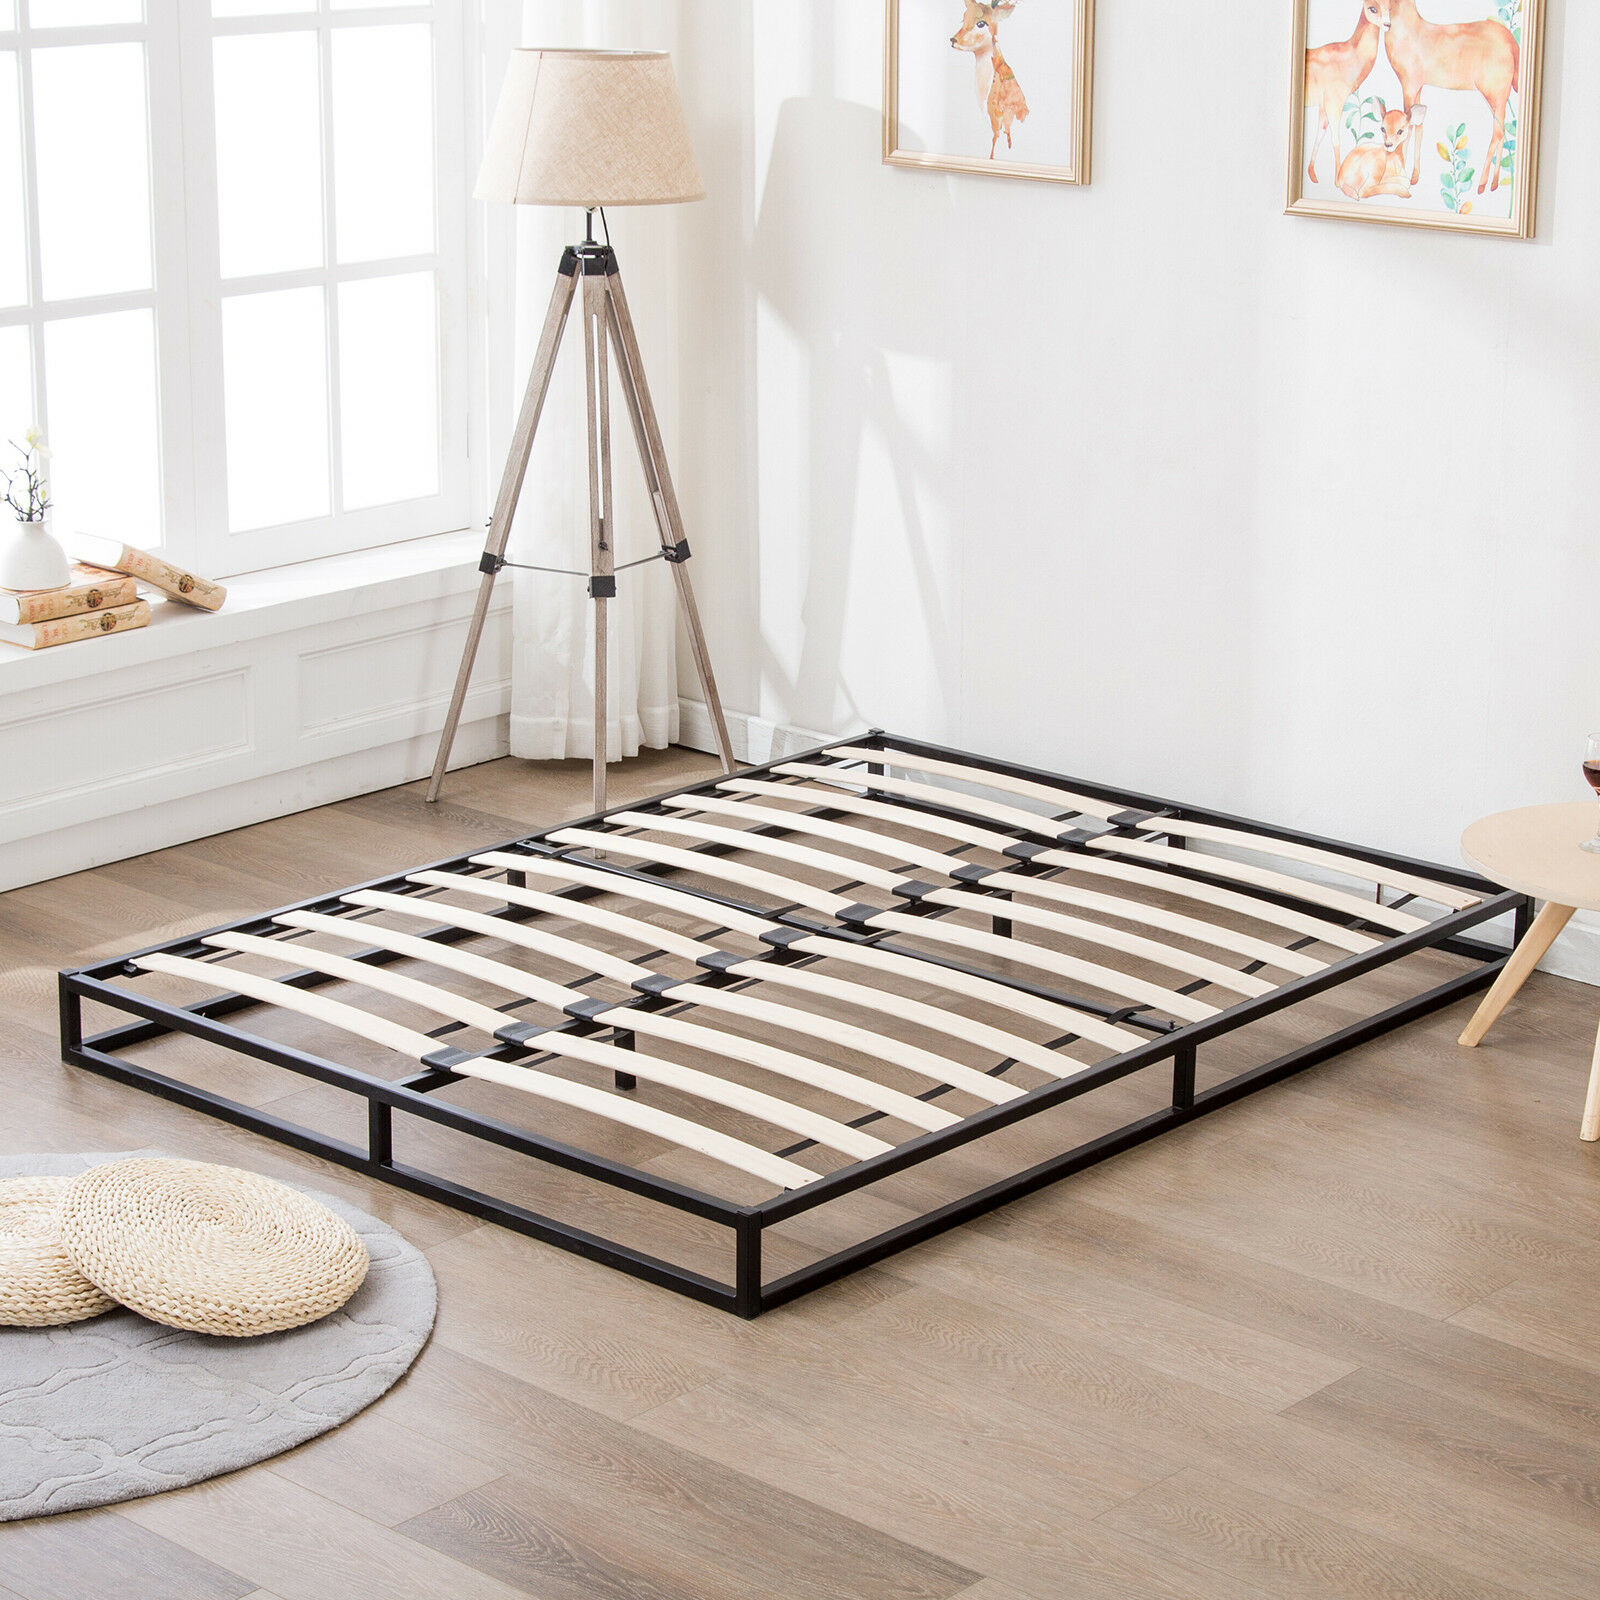 Mattress Platform Details About King Size Metal Bed Frame Platform W Wood Slats Mattress Foundation Bedroom